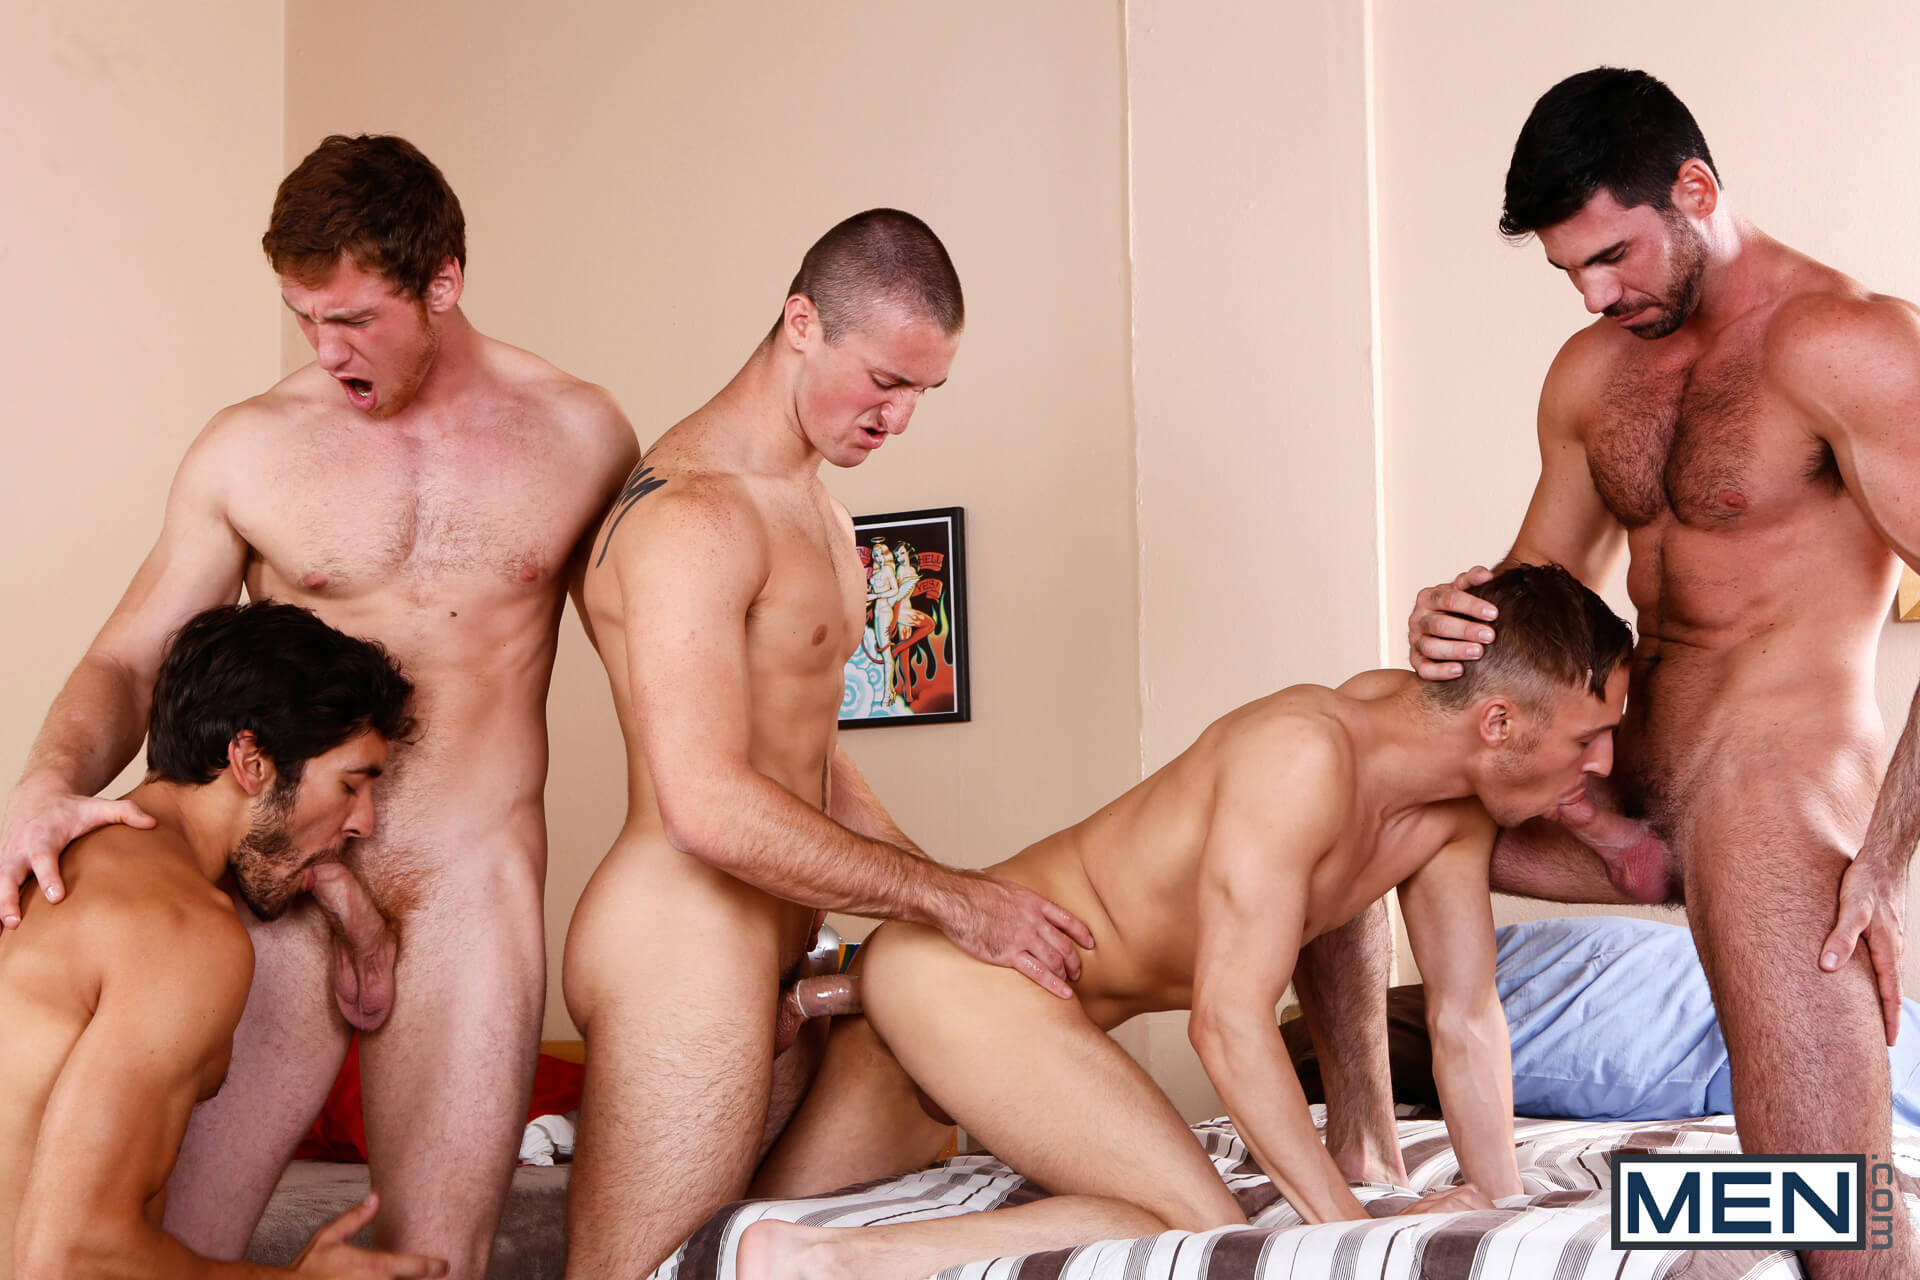 men jizz orgy the new guy part 3 billy santoro colden armstrong connor kline connor maguire dale cooper gay porn blog image 11